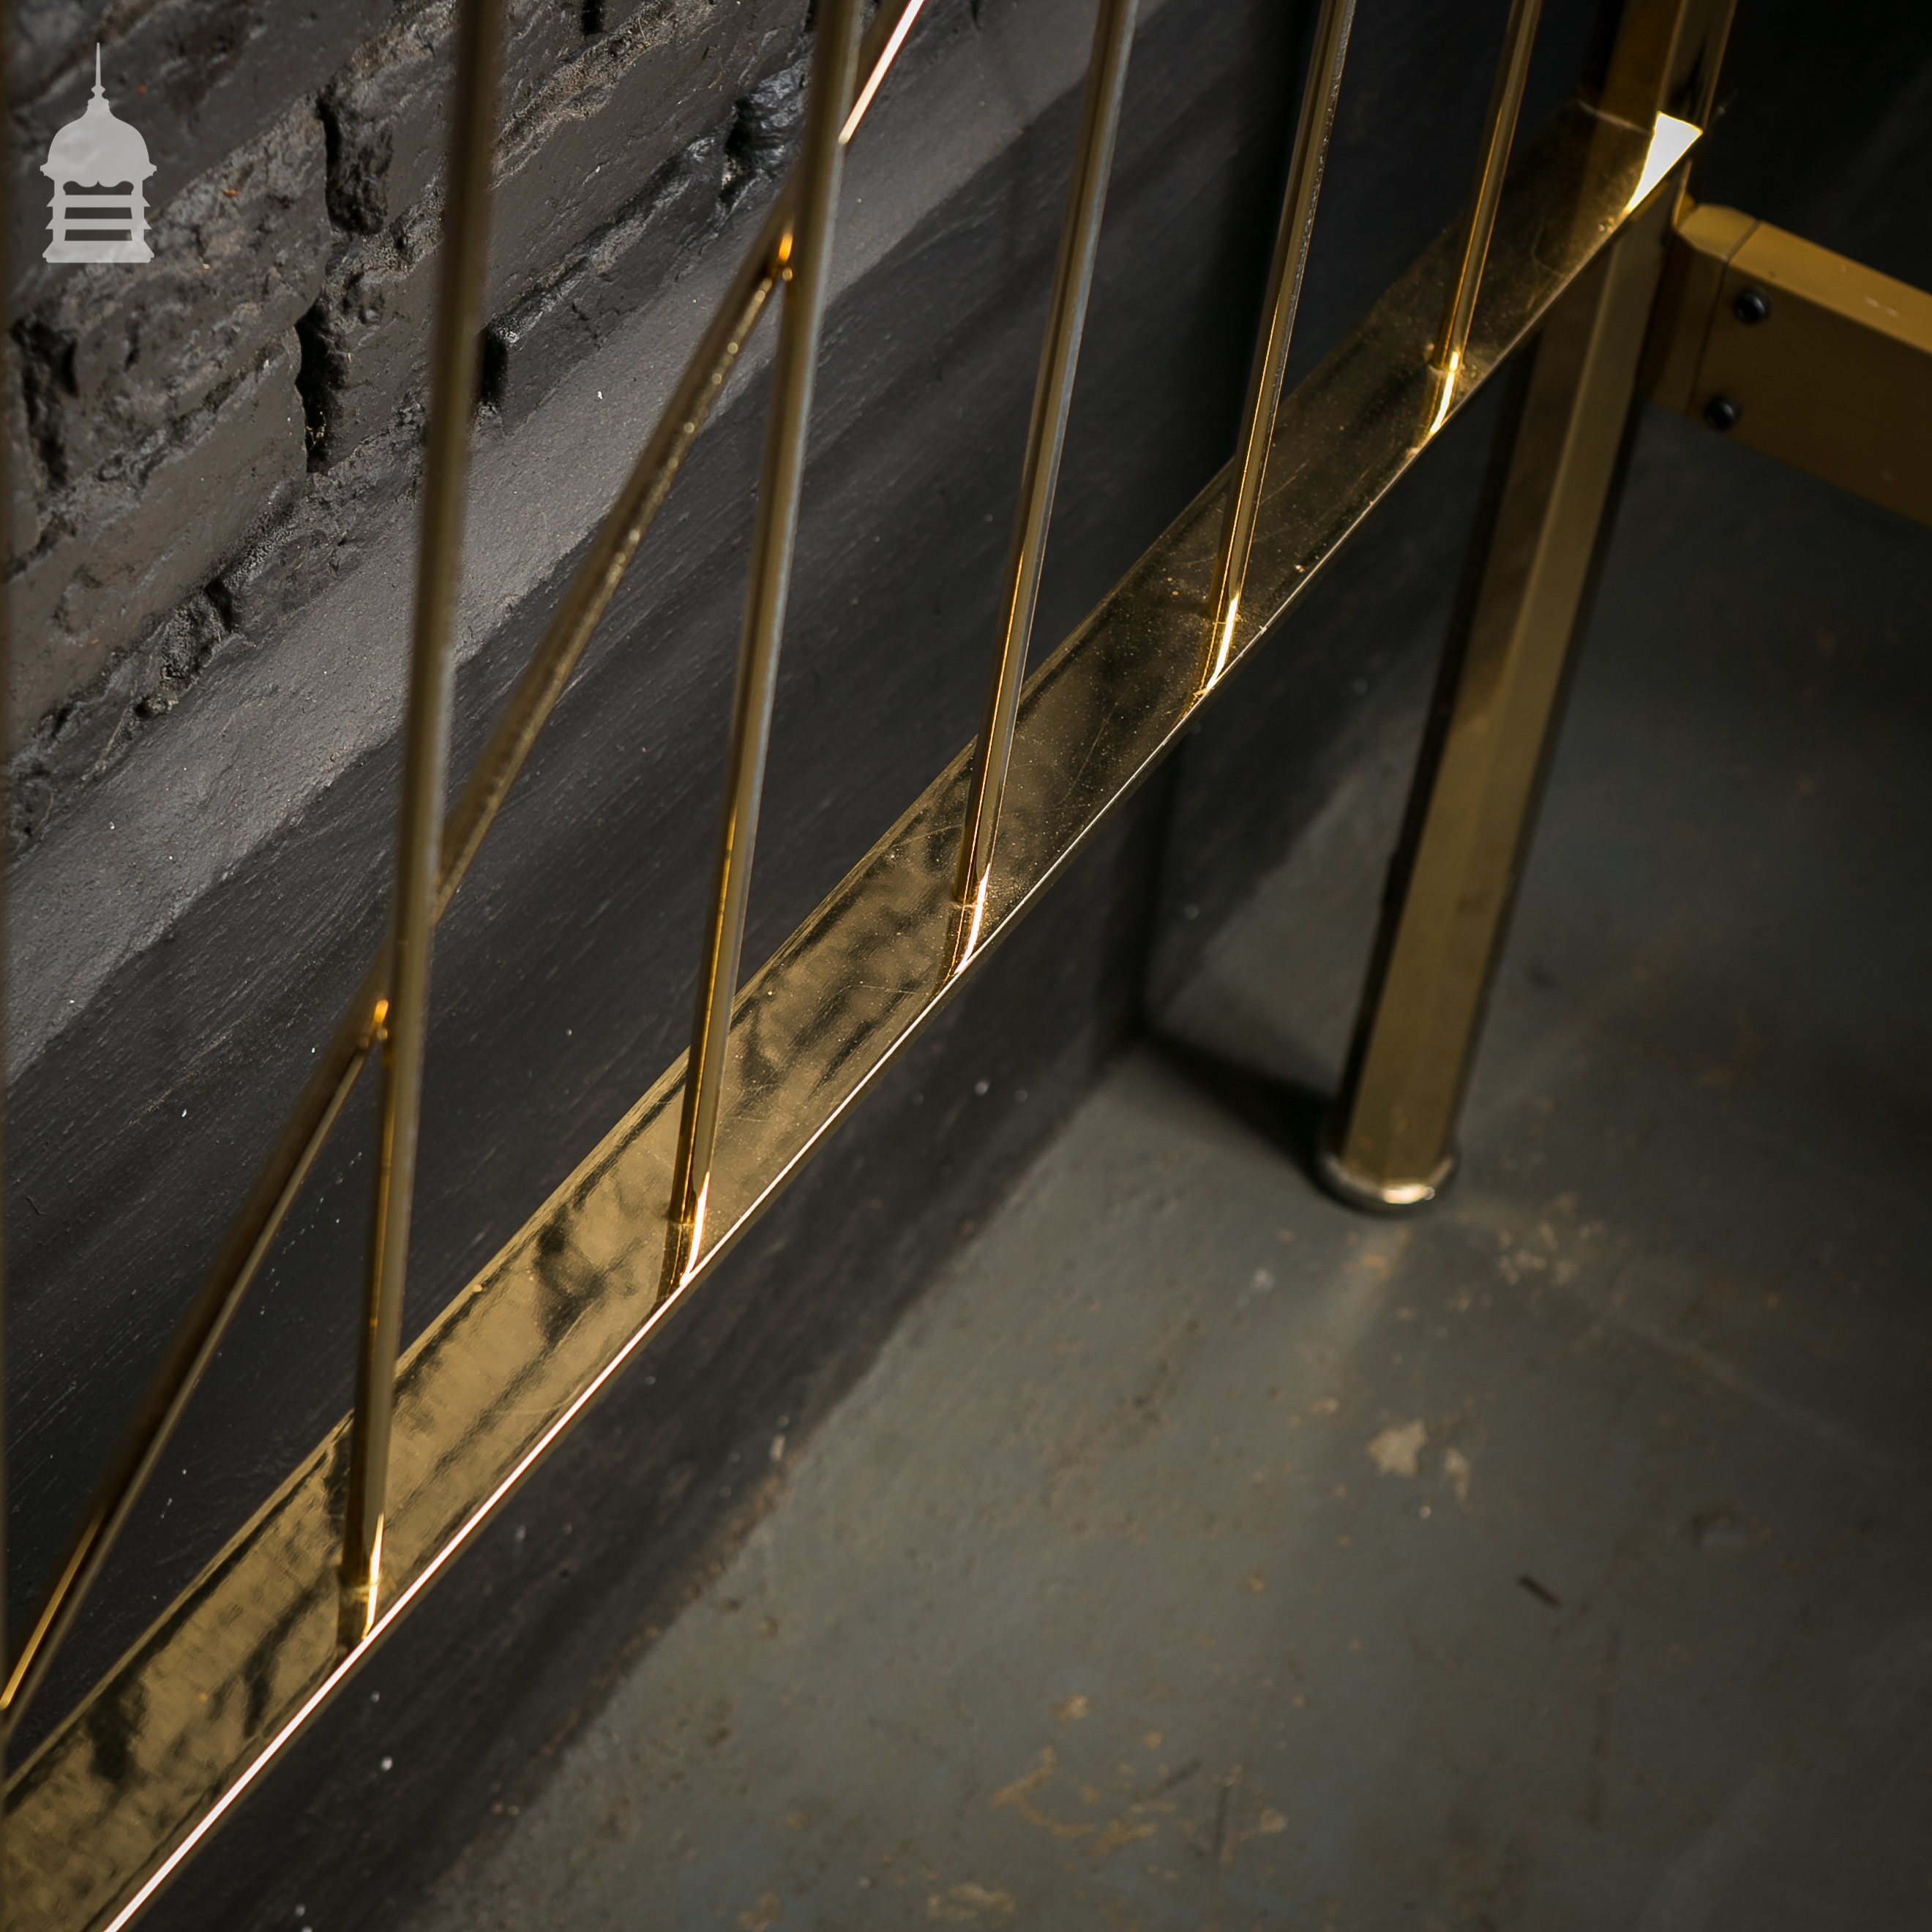 22 Carat Gold Plated Bed Frame Salvaged from a Home in Knightsbridge 3